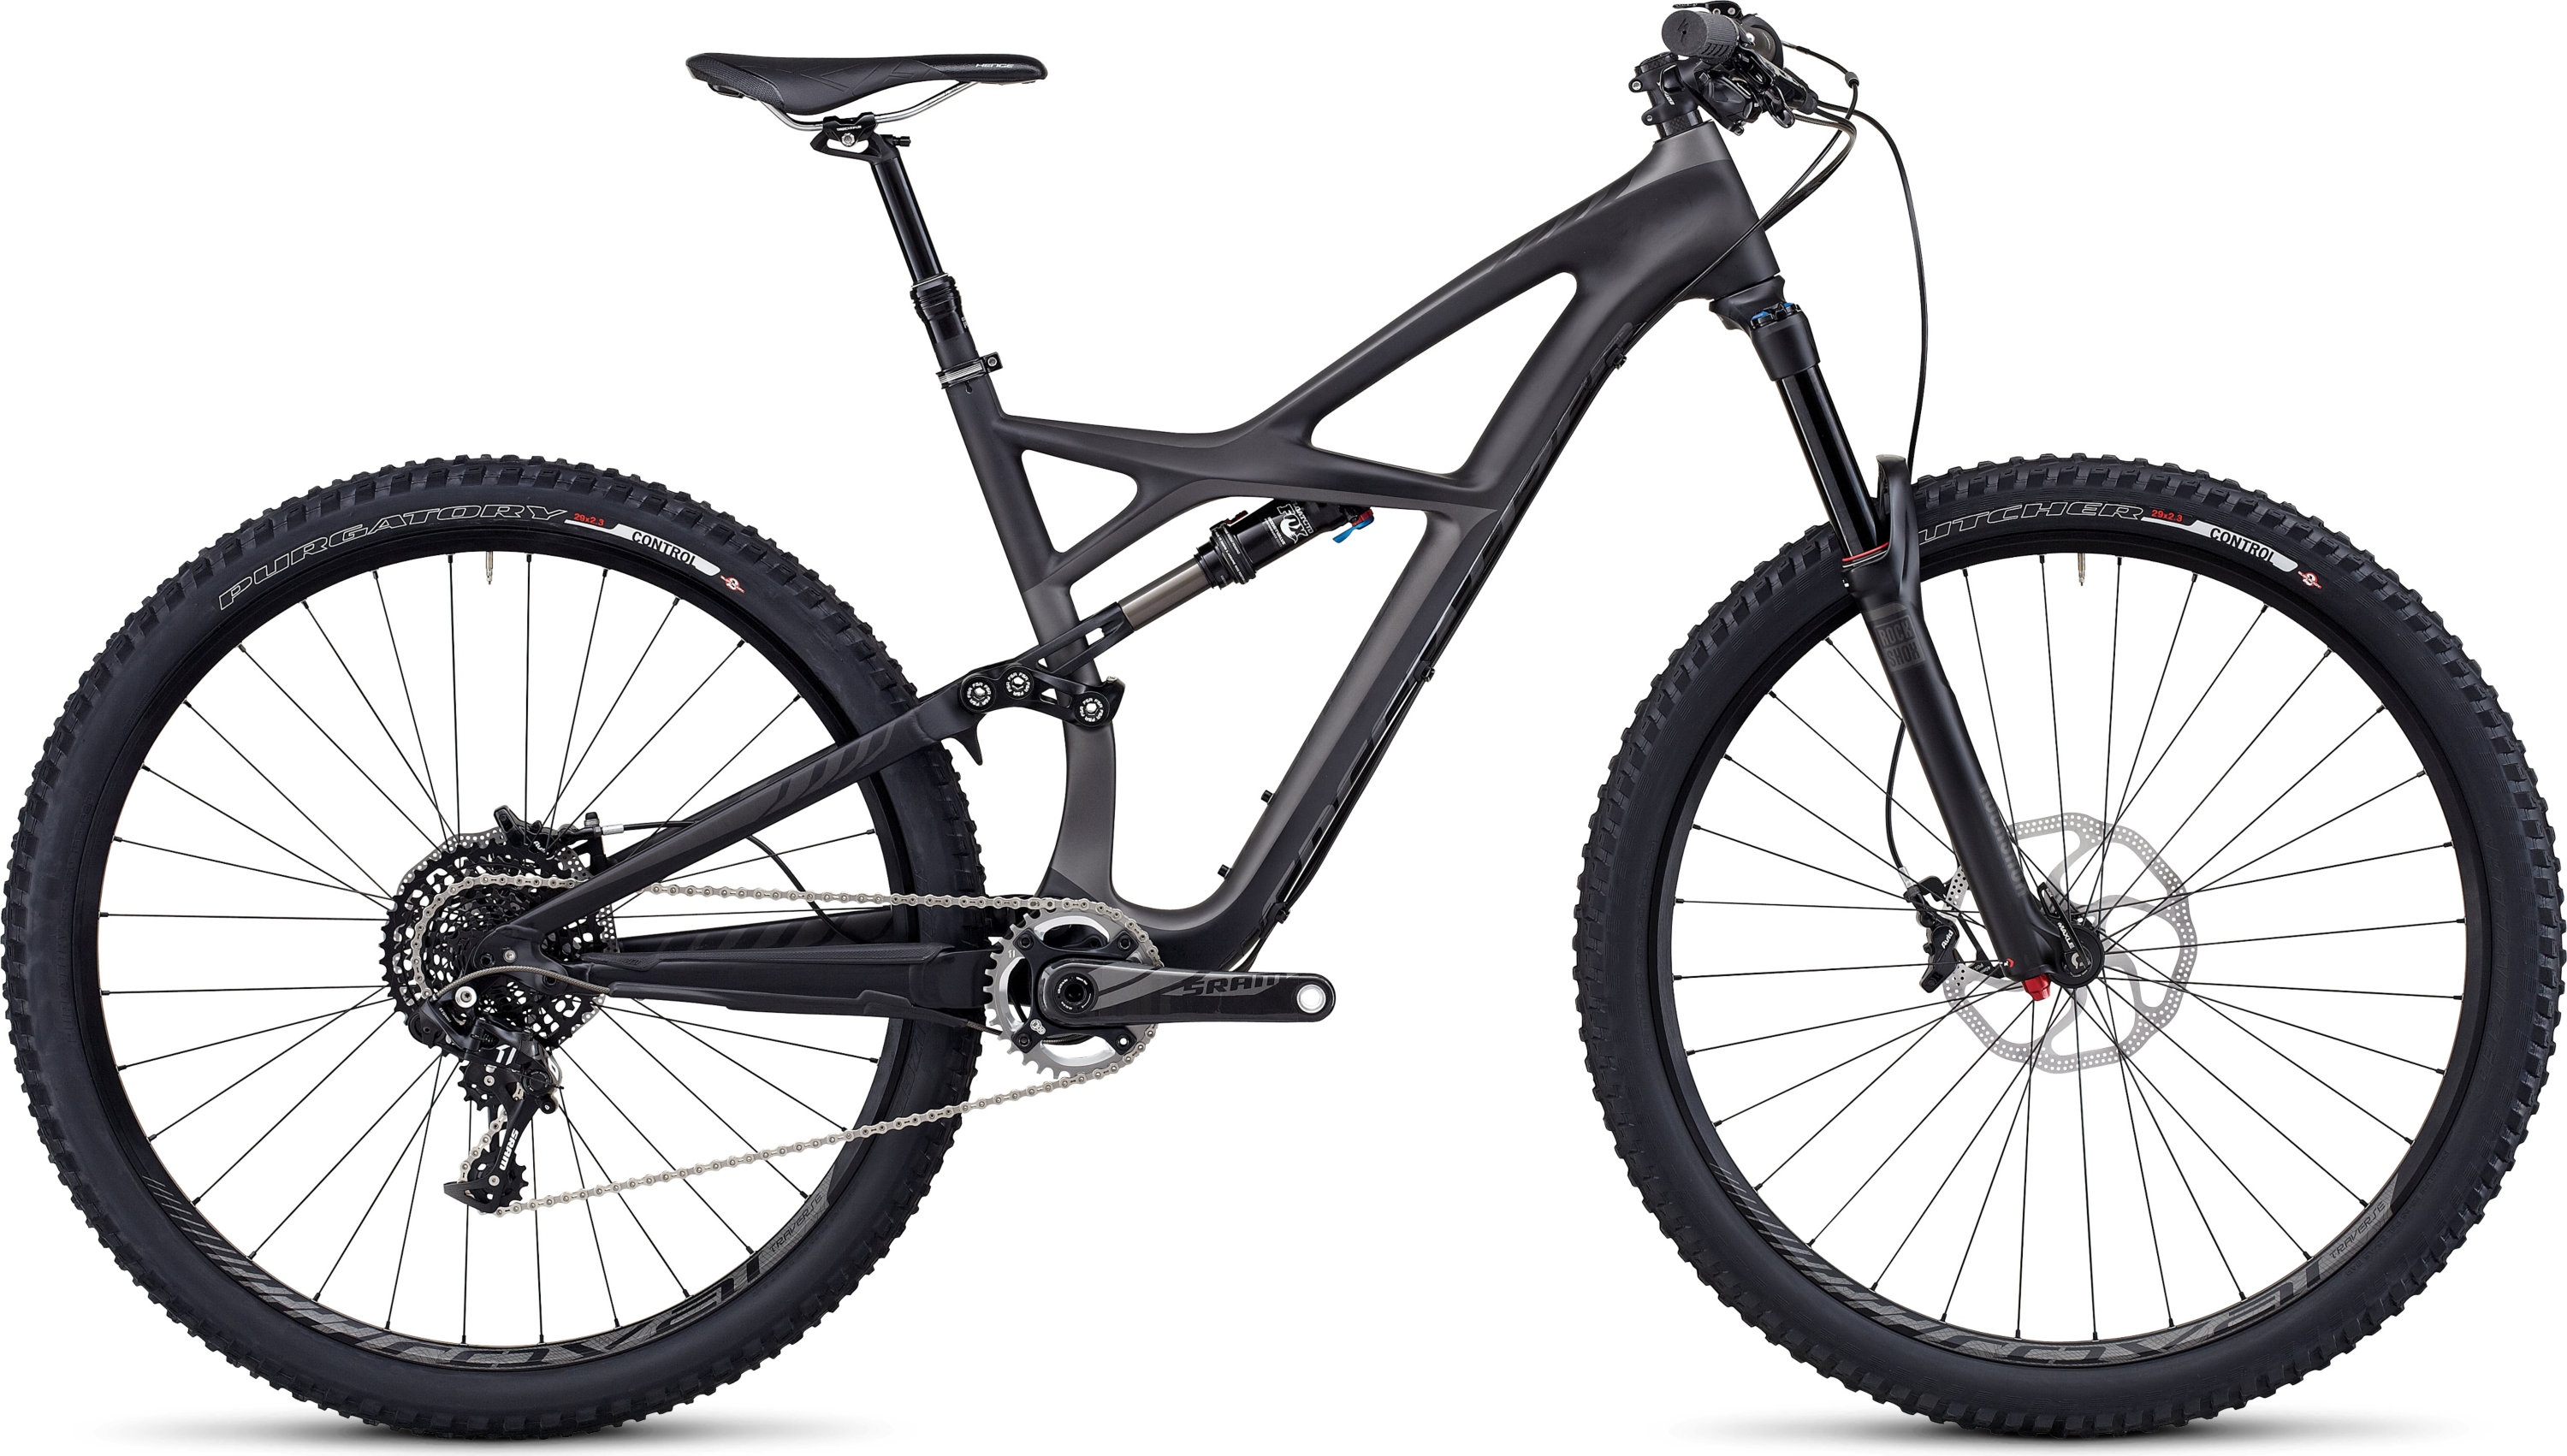 USED 2020 SPECILIZED ENDURO EXPERT CARBON 29 CLGRY//COP S2